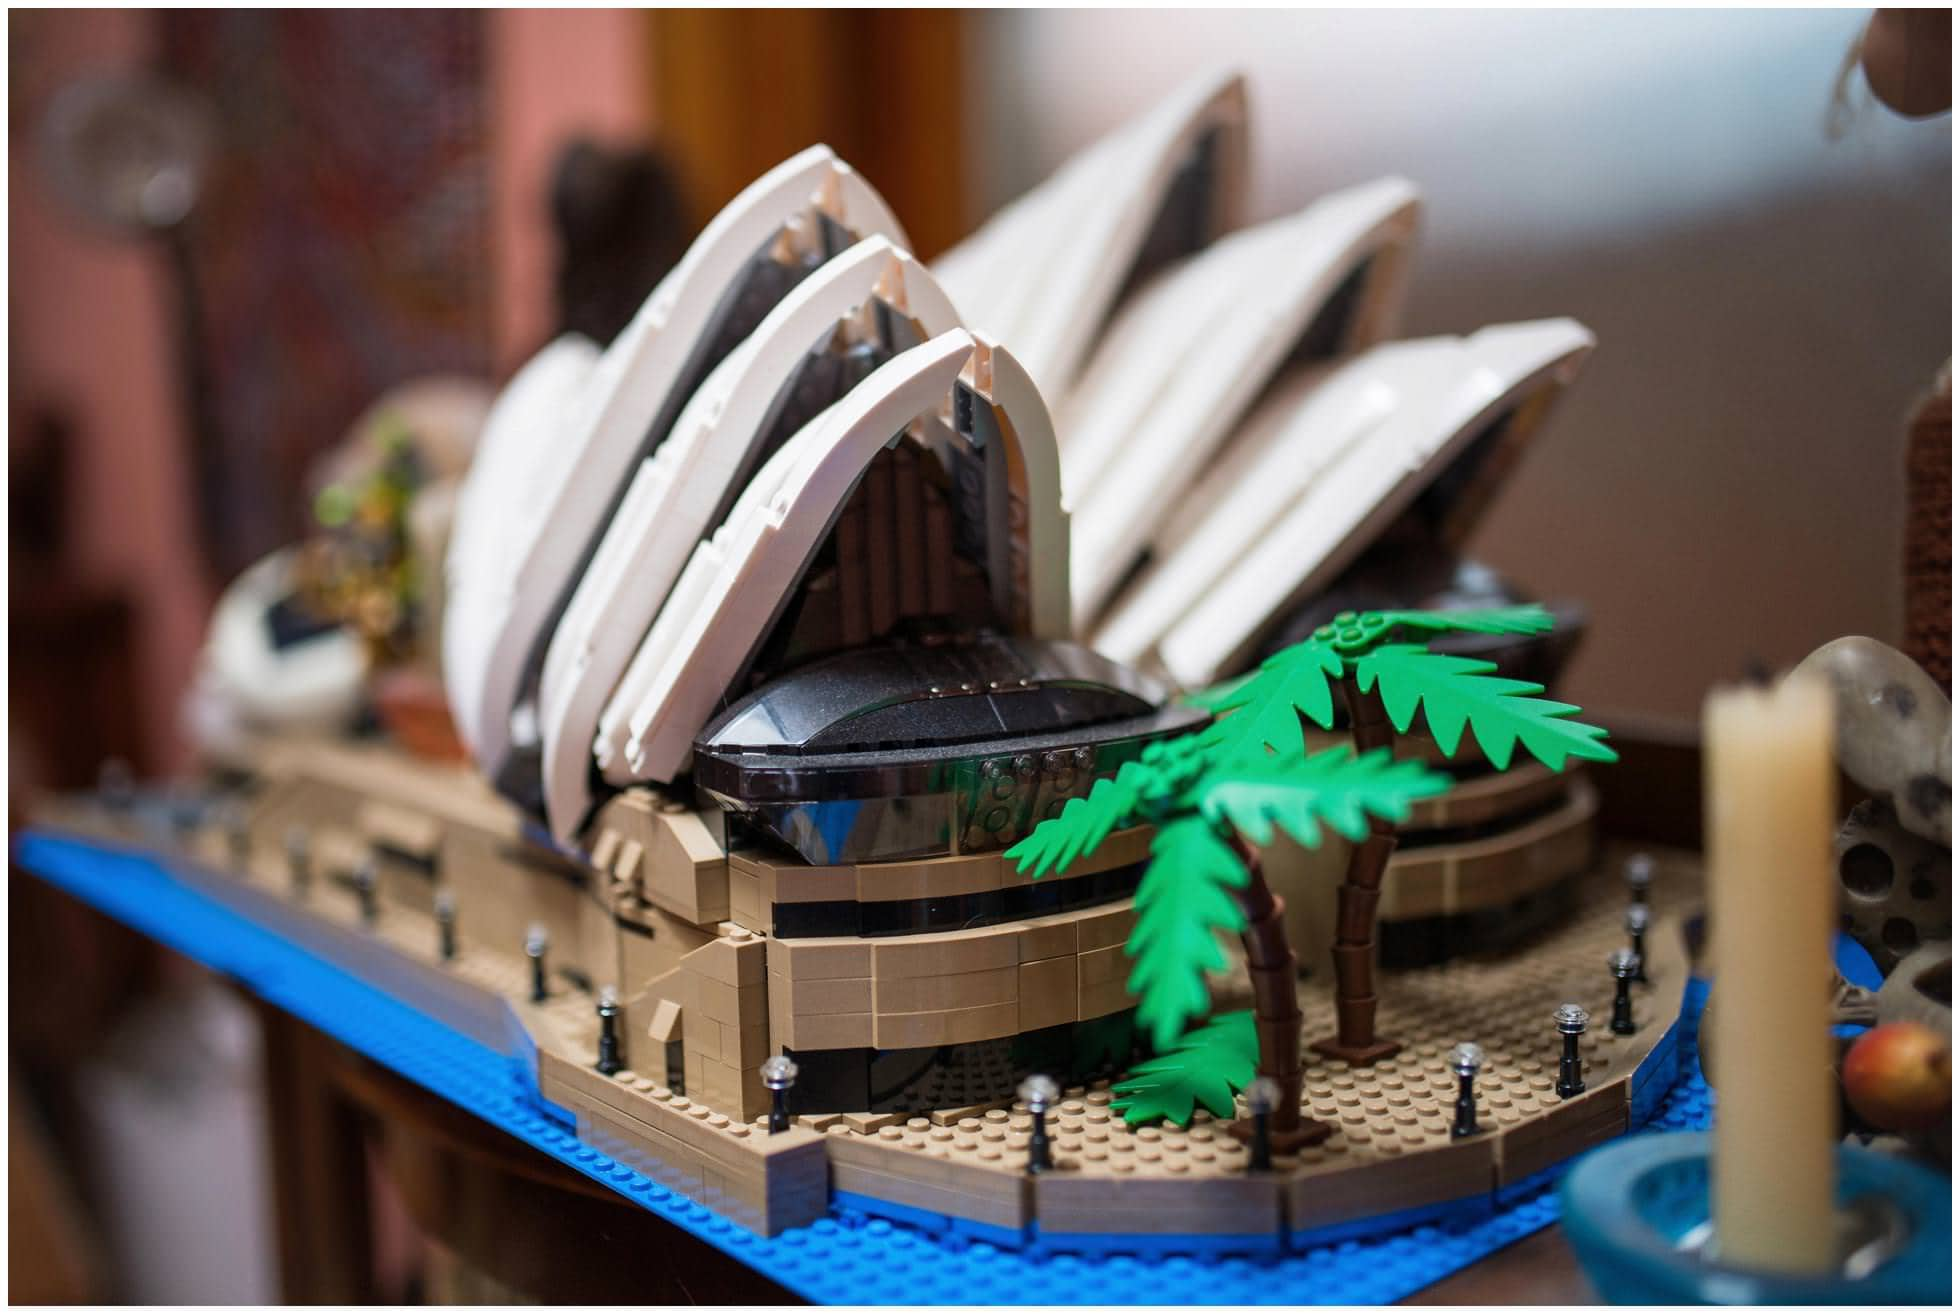 A lego Sydney opera house at the bride's family home.